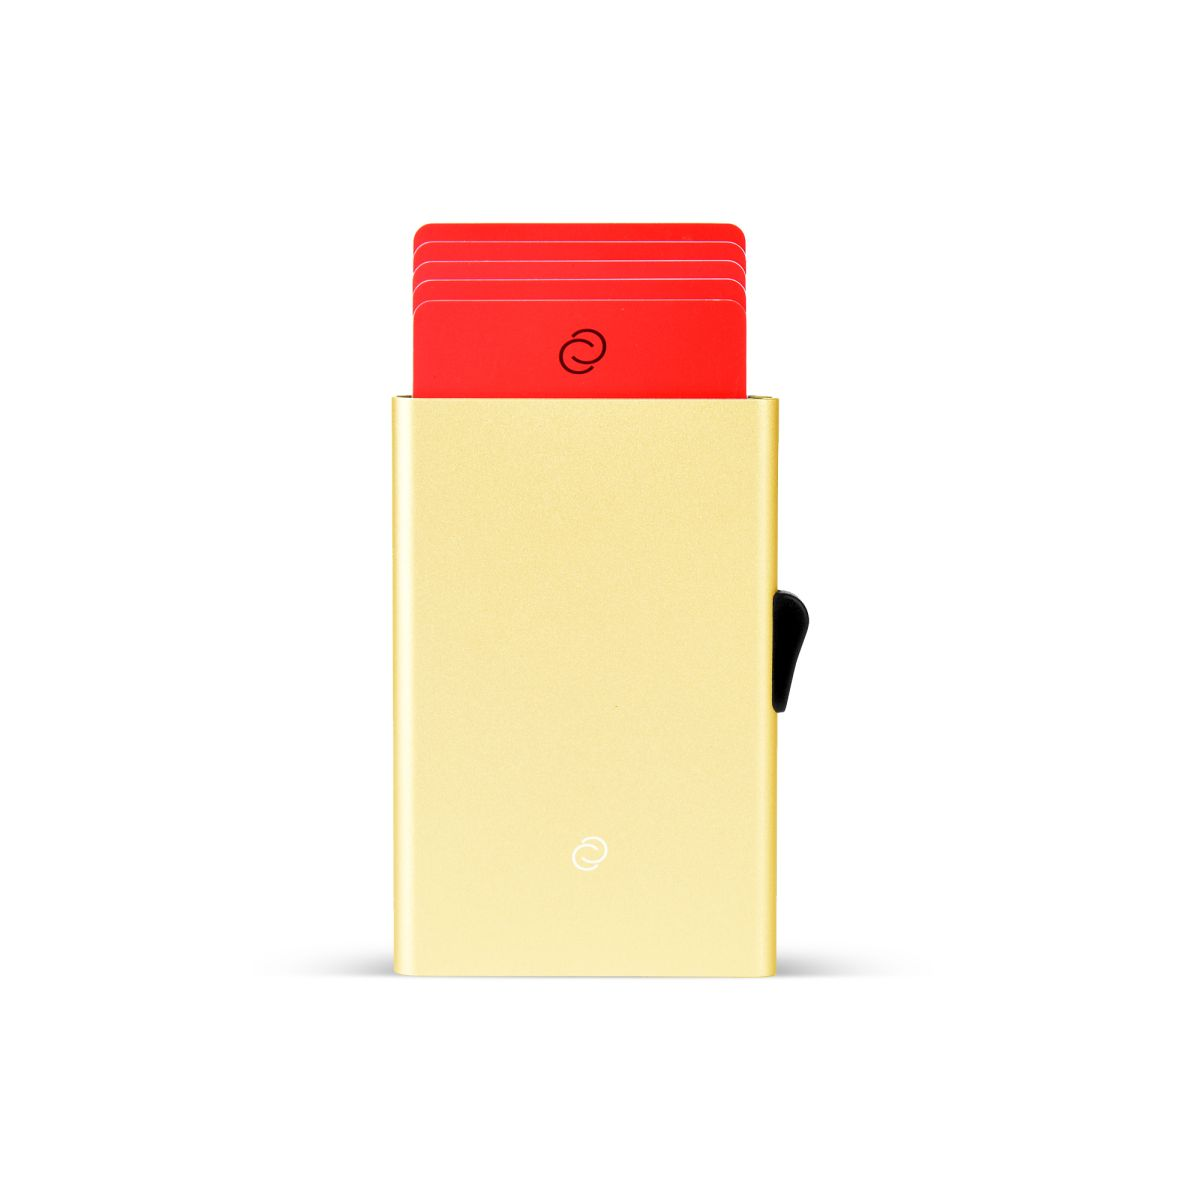 Slim Aluminum Card Holder - Gold